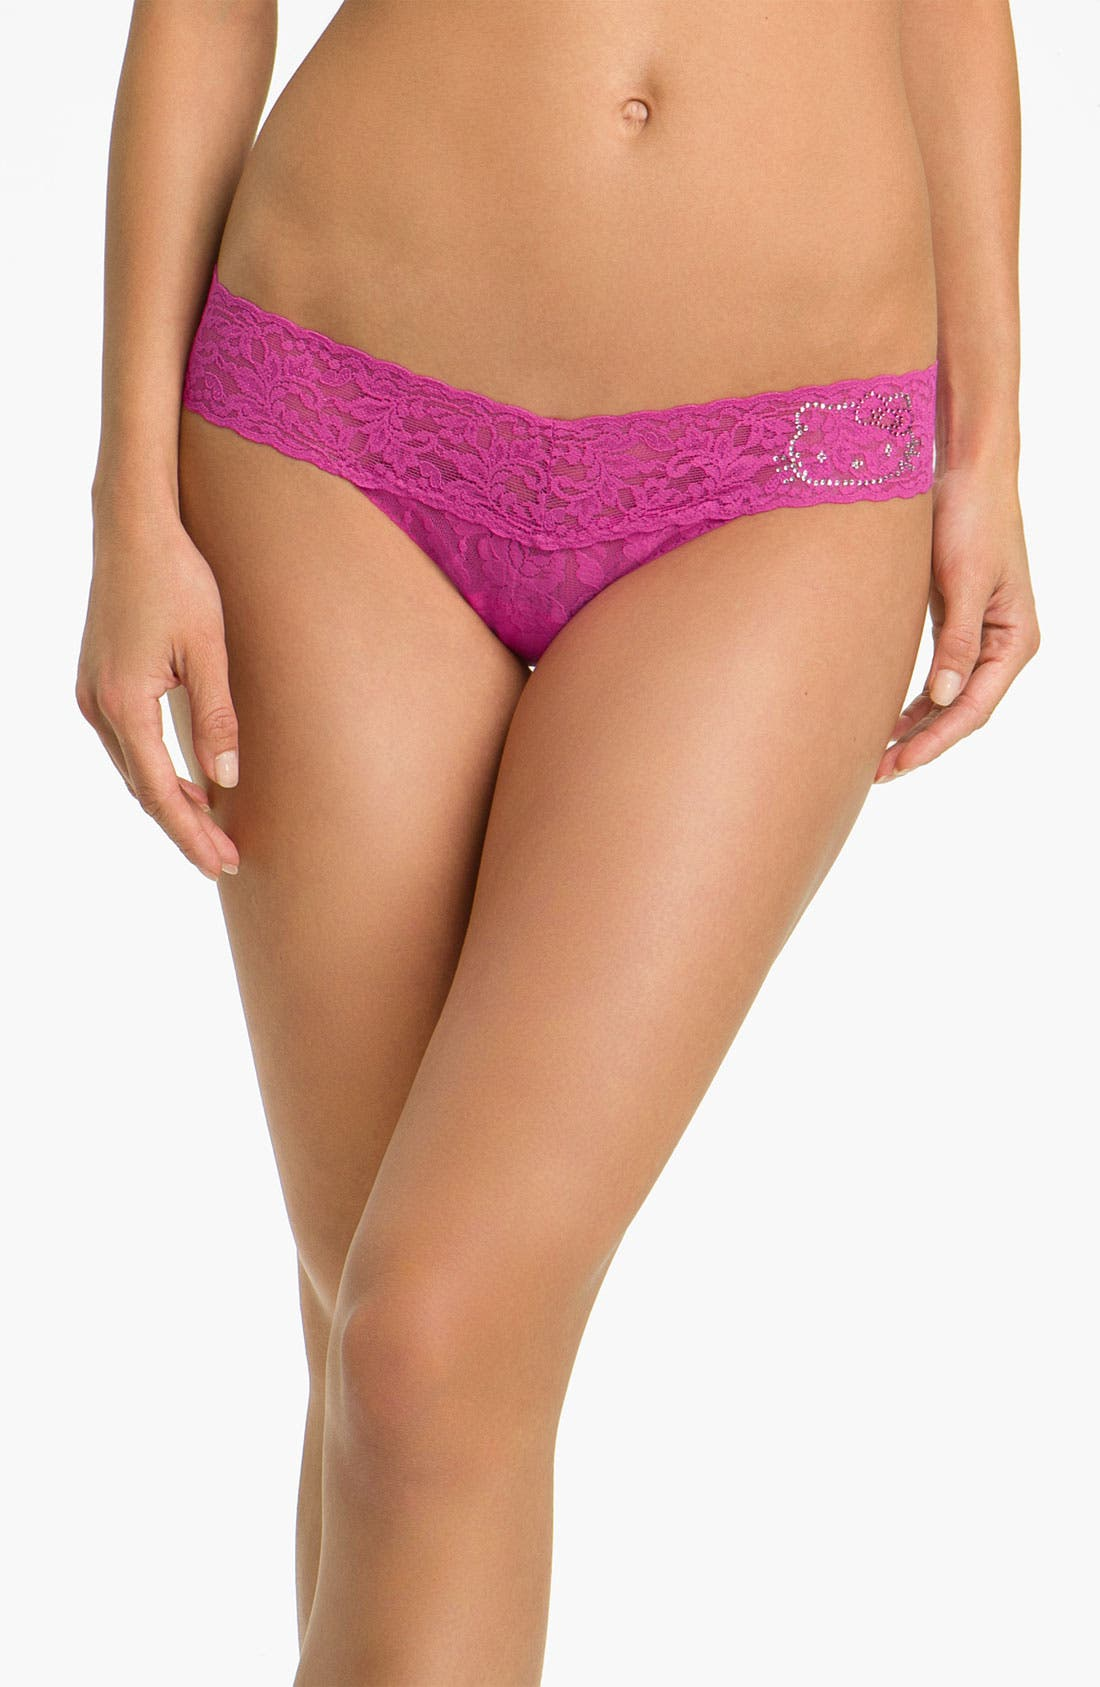 Alternate Image 1 Selected - Hanky Panky 'Hello Kitty®' Low Rise Lace Thong